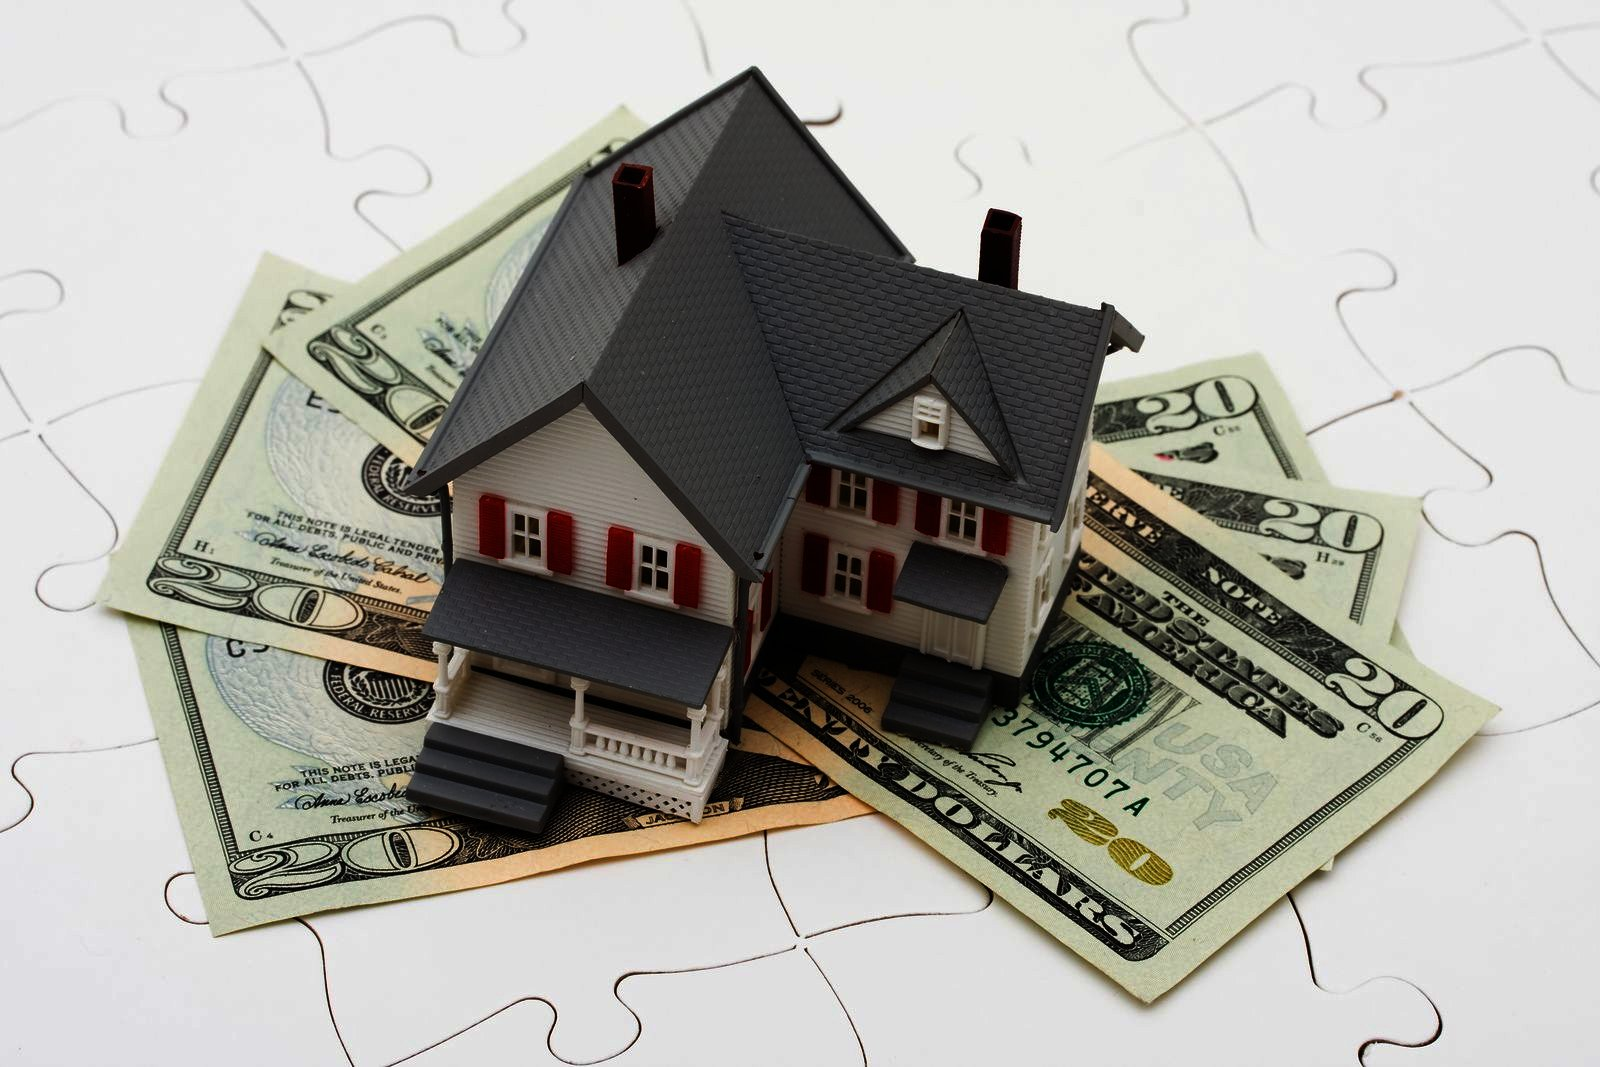 IDEAL - What is the IDEAL investment property?